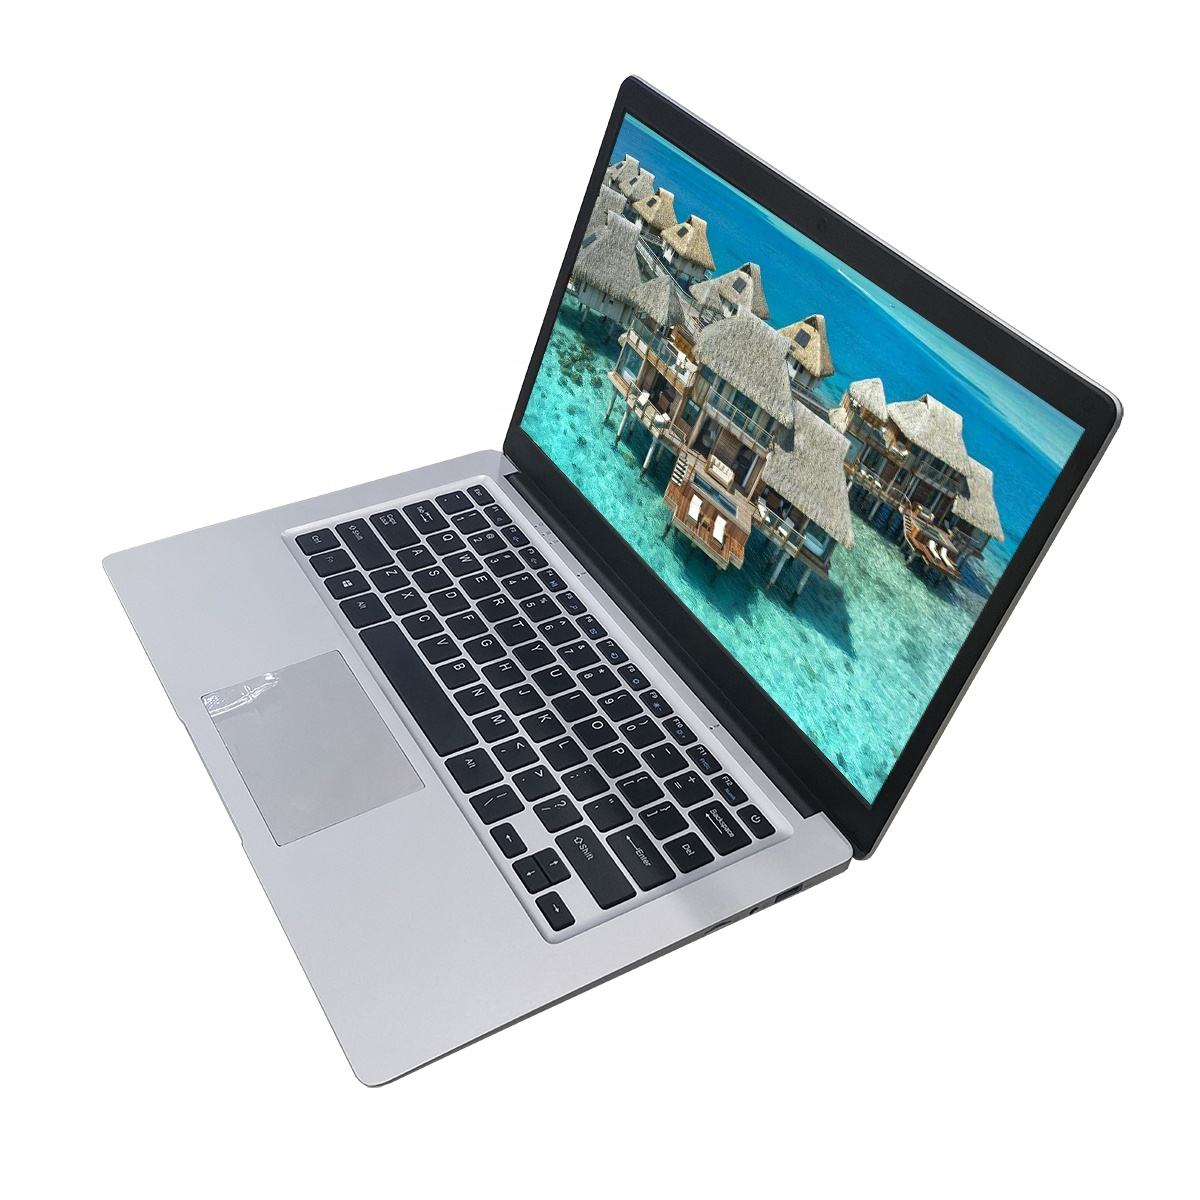 Wholesale Customized marke 14.1 zoll laptop computer mit 8GB Ram Dual lagerung Disk